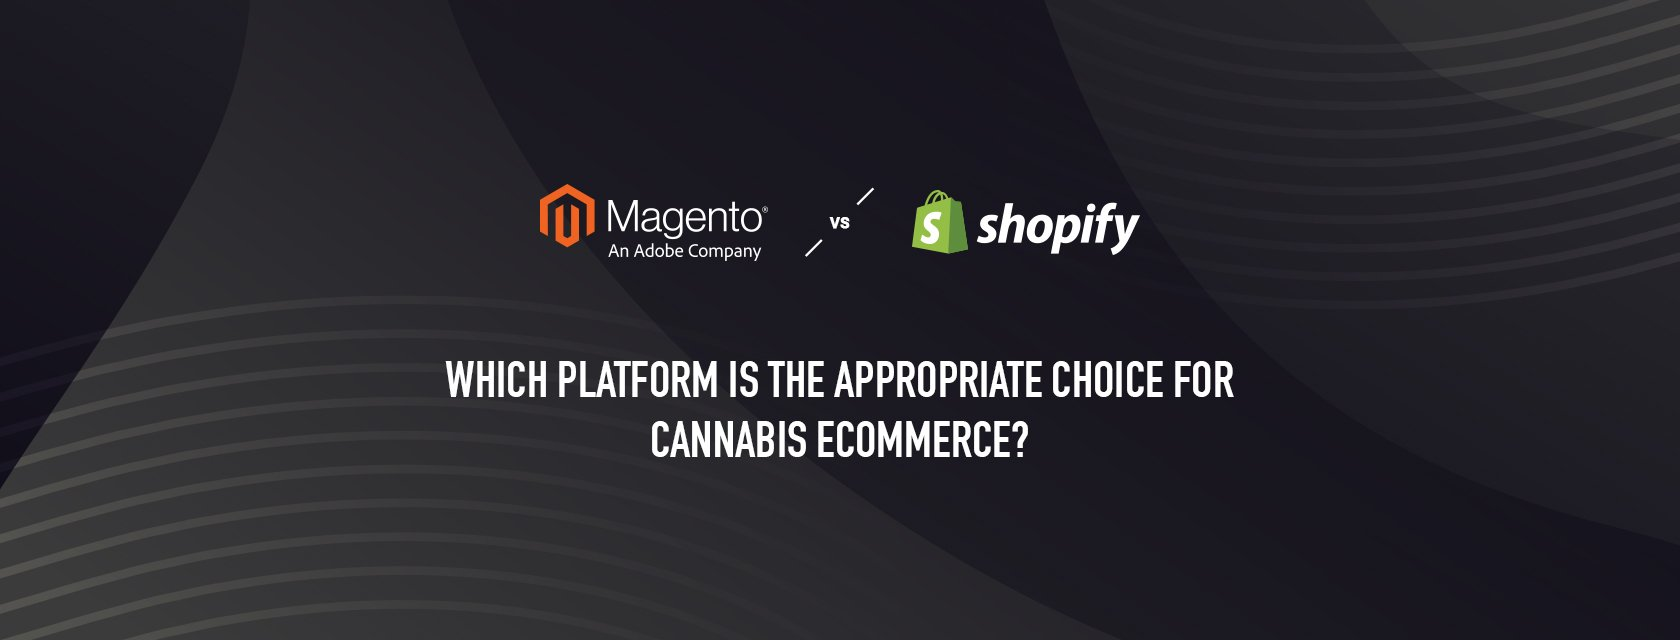 Magento Vs. Shopify – Which platform is the appropriate choice for Cannabis eCommerce?